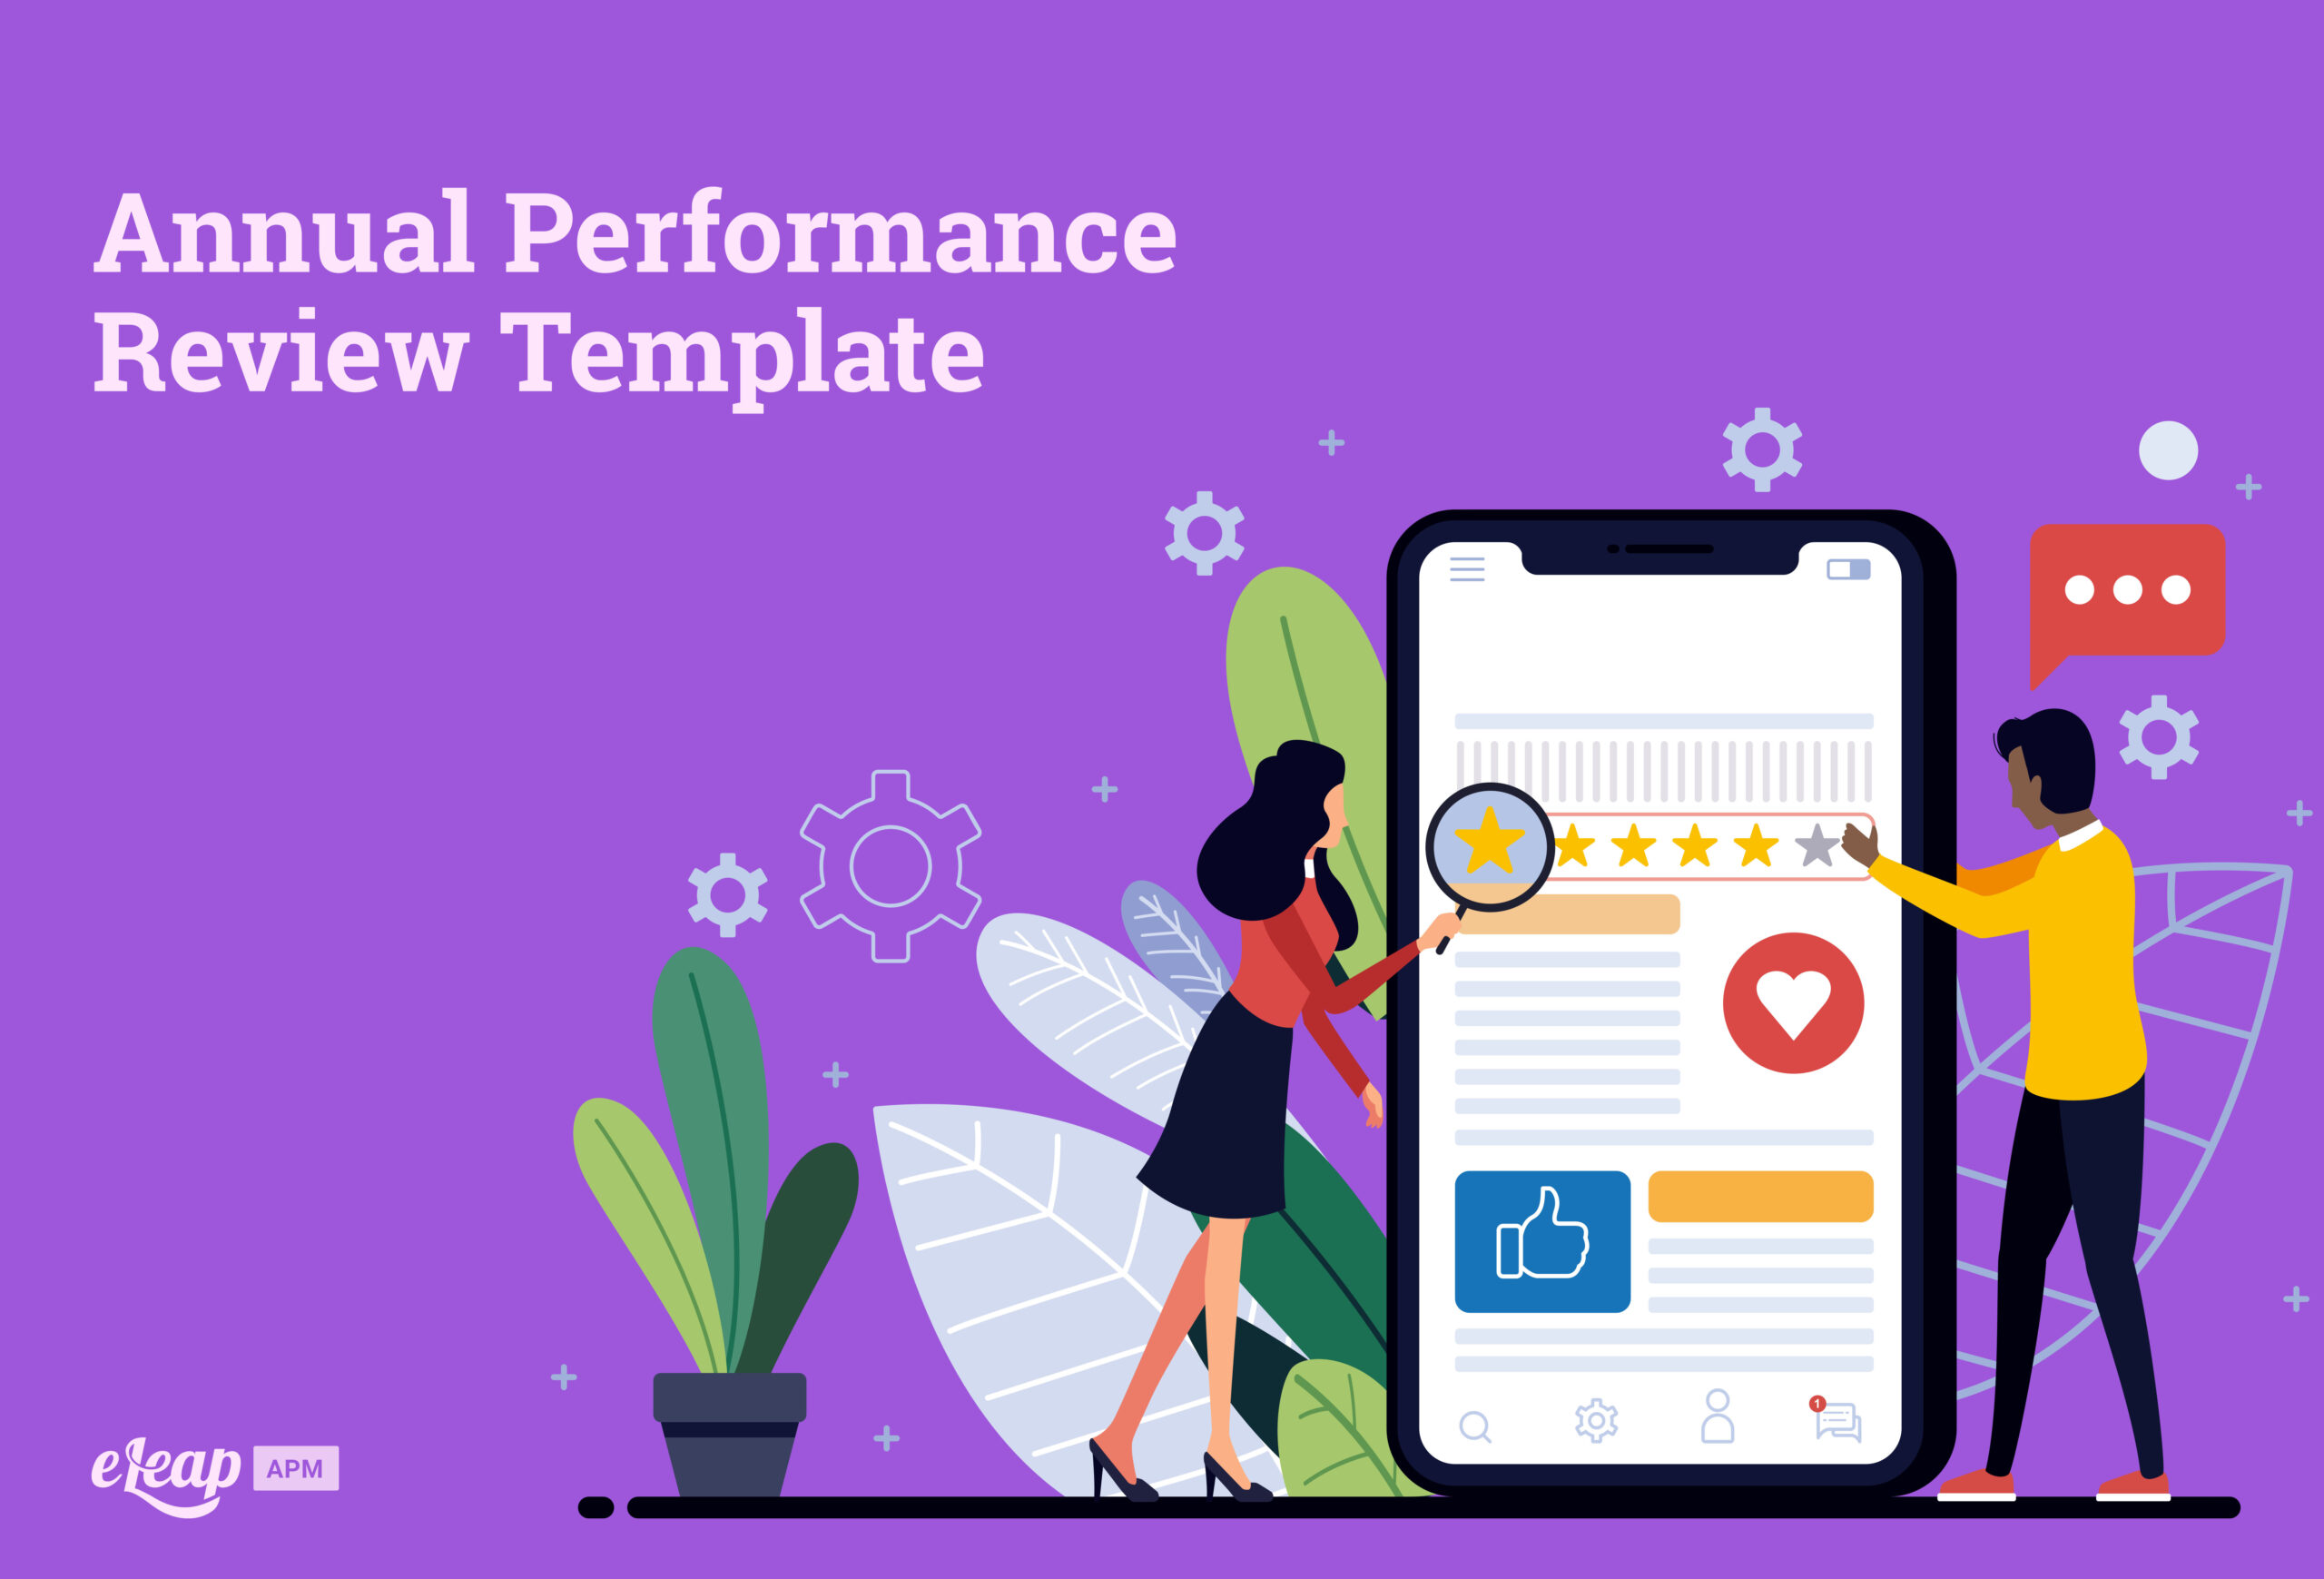 Annual Performance Review Template